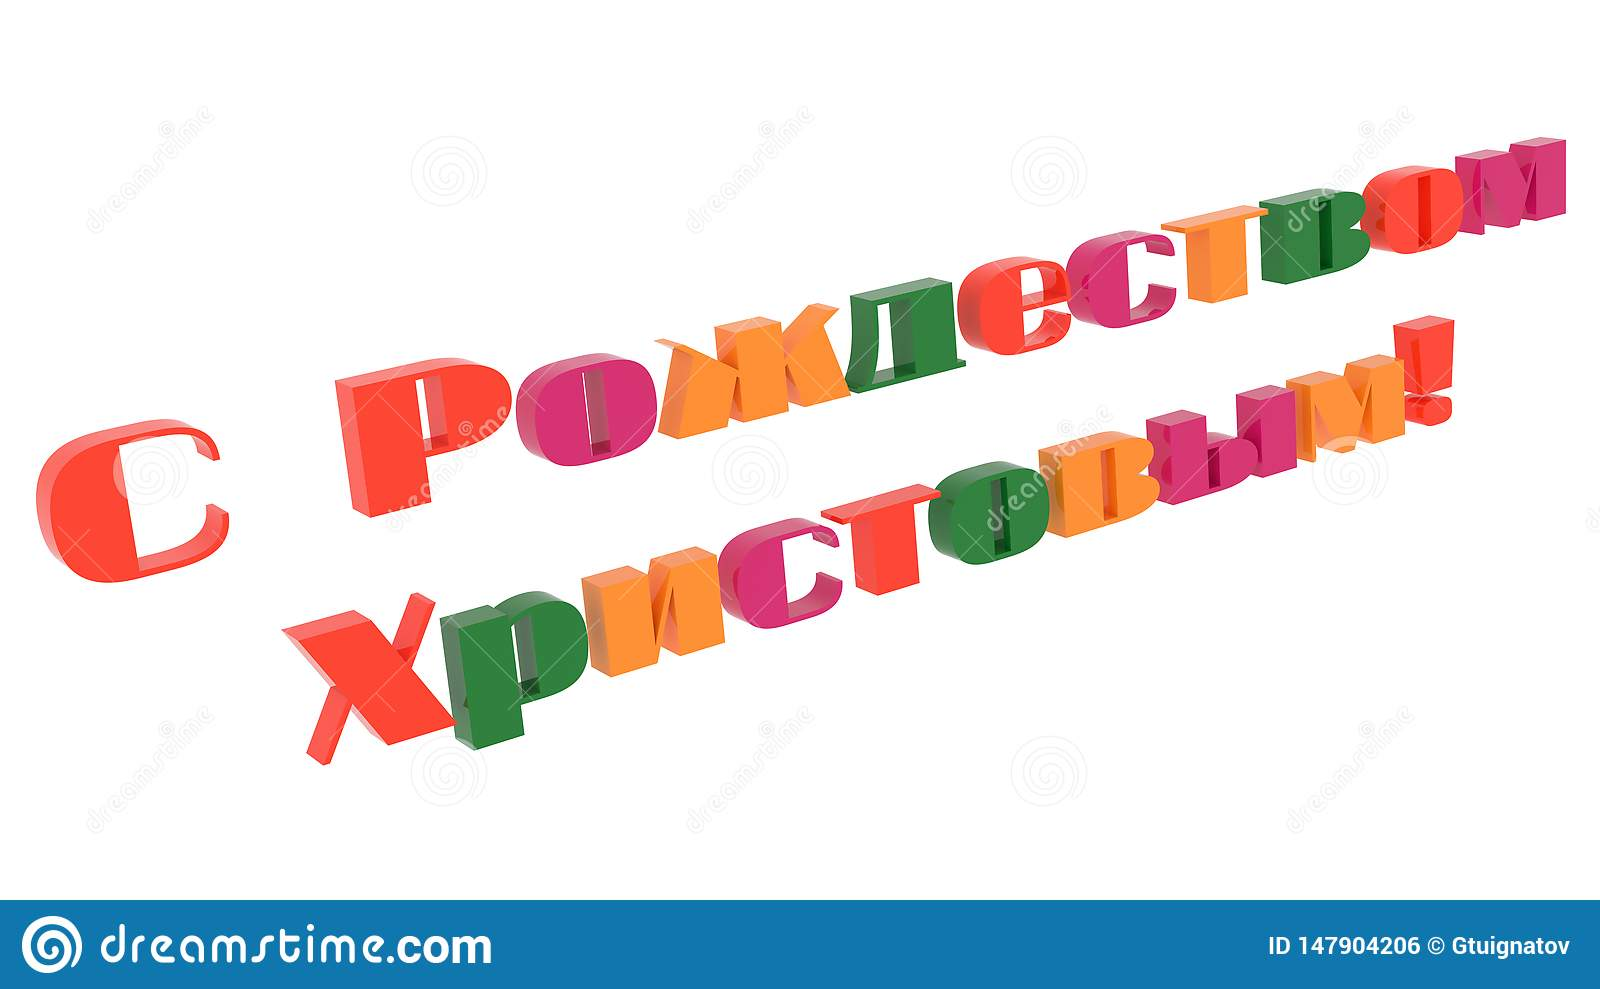 Merry Christmas In Russian Words 3D Rendered Congratulation Text With Techno, Futuristic Font Illustration Colored